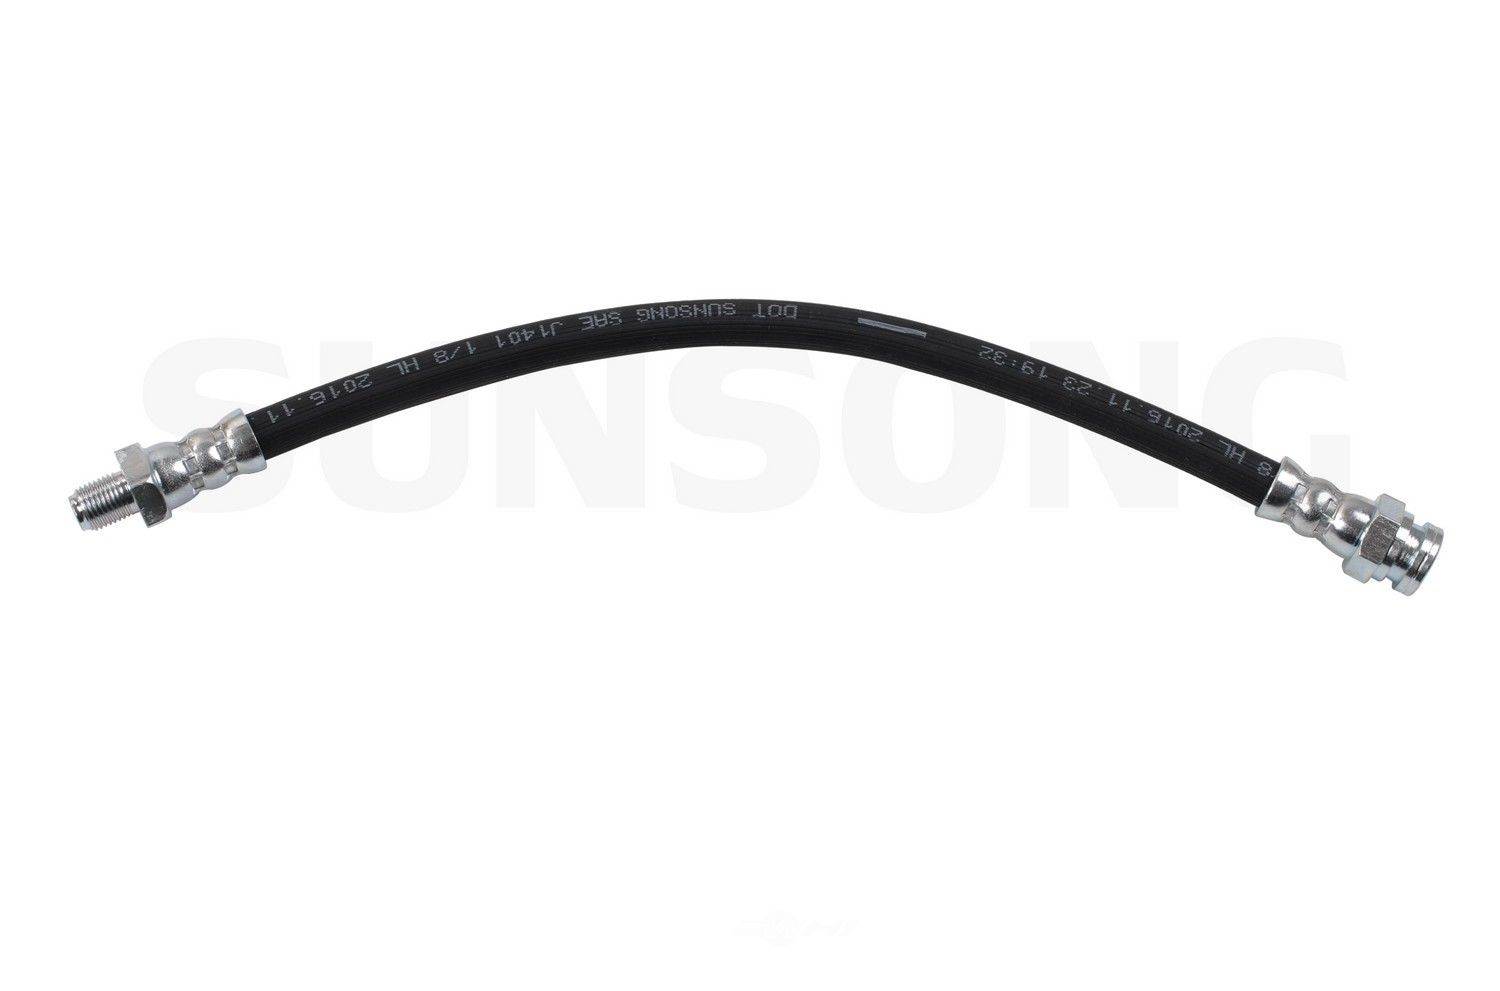 SUNSONG NORTH AMERICA - Brake Hydraulic Hose - SUG 2201572